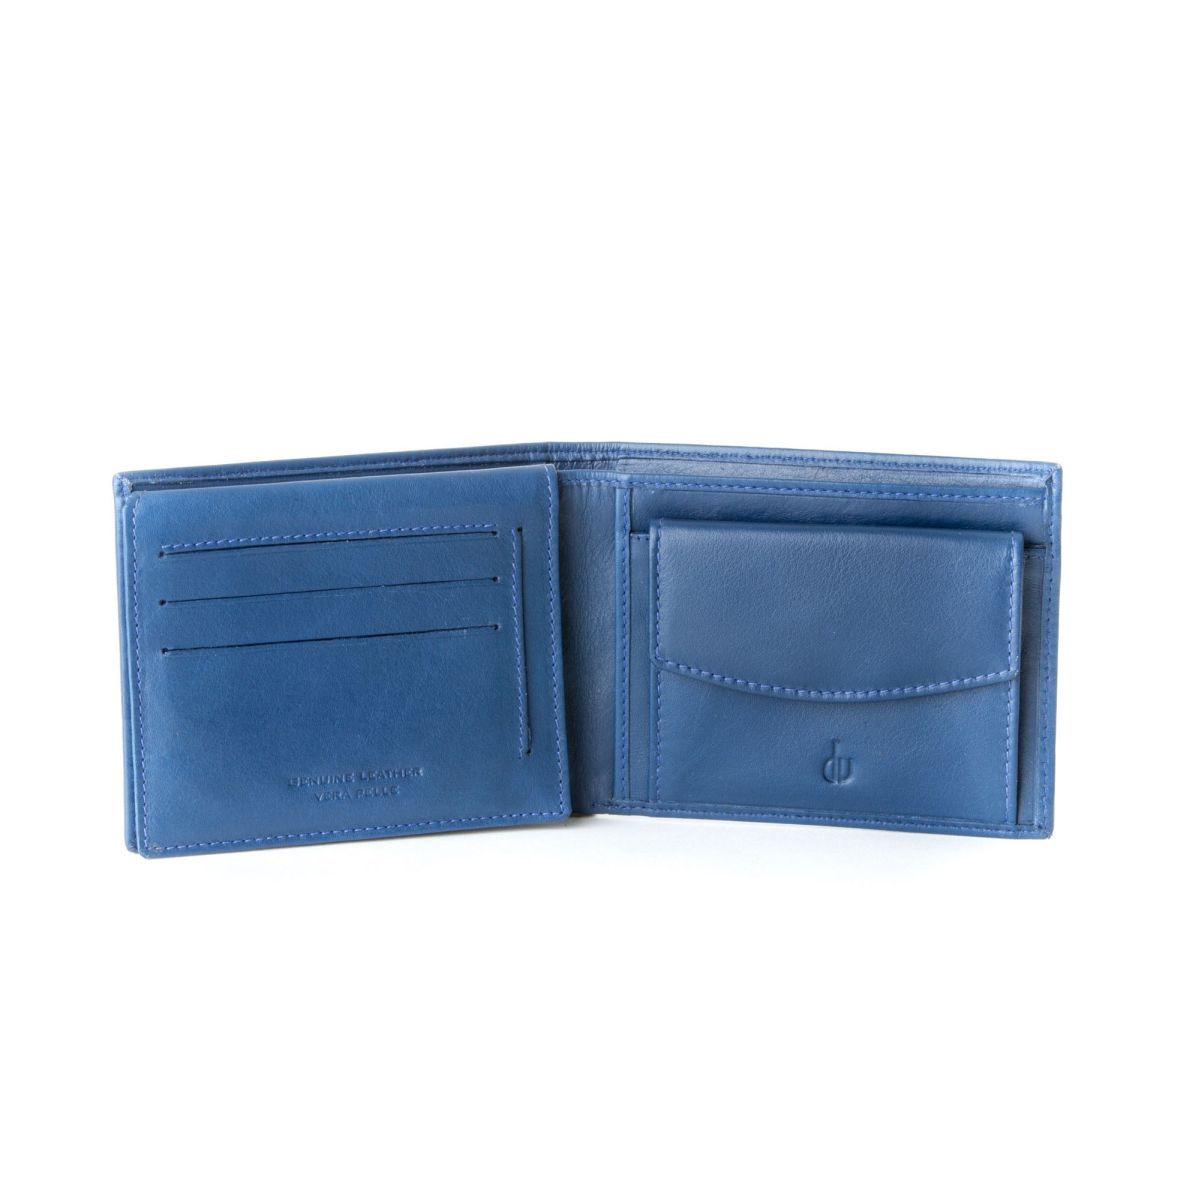 dv Leather classic wallet with coin purse and inside flap - Blue